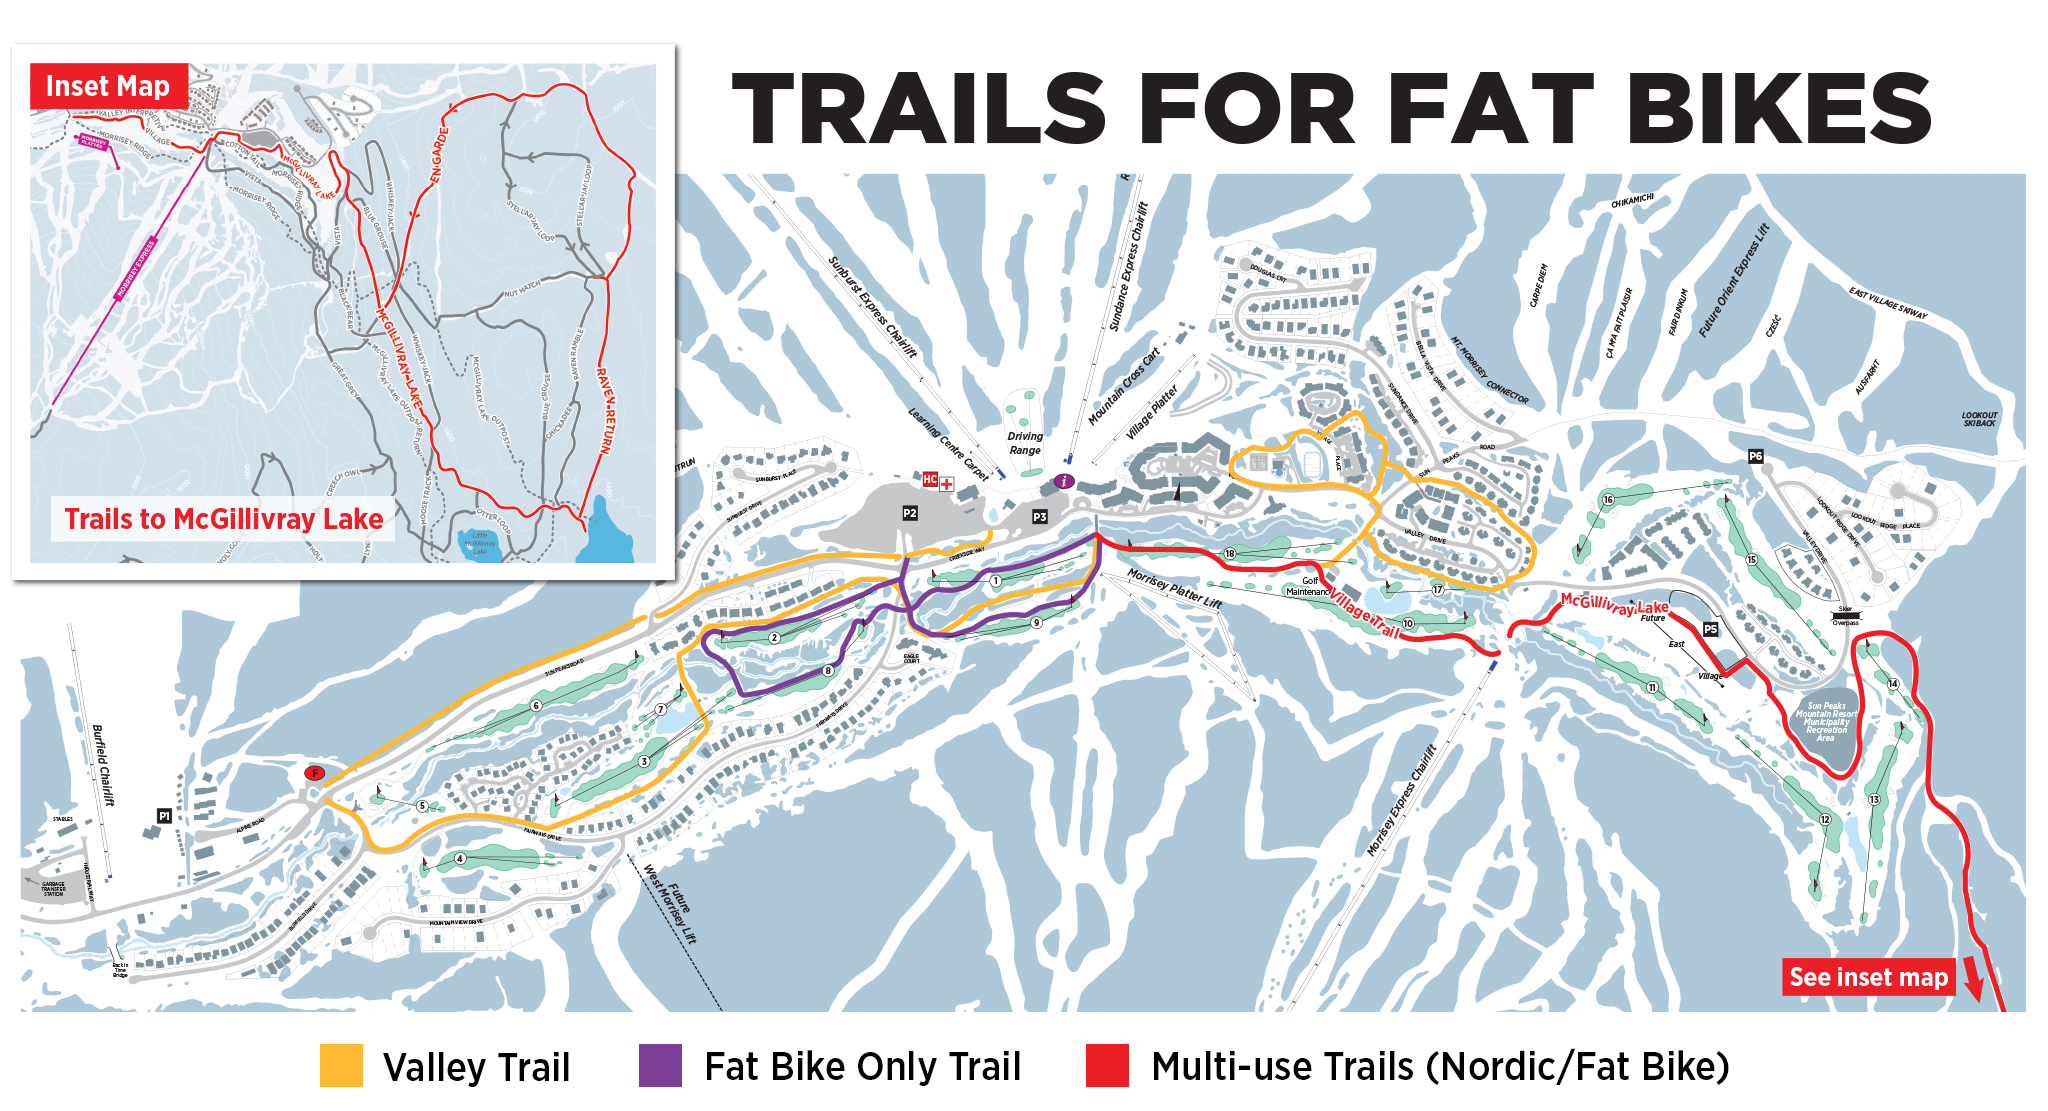 Trails for Fat Bikes